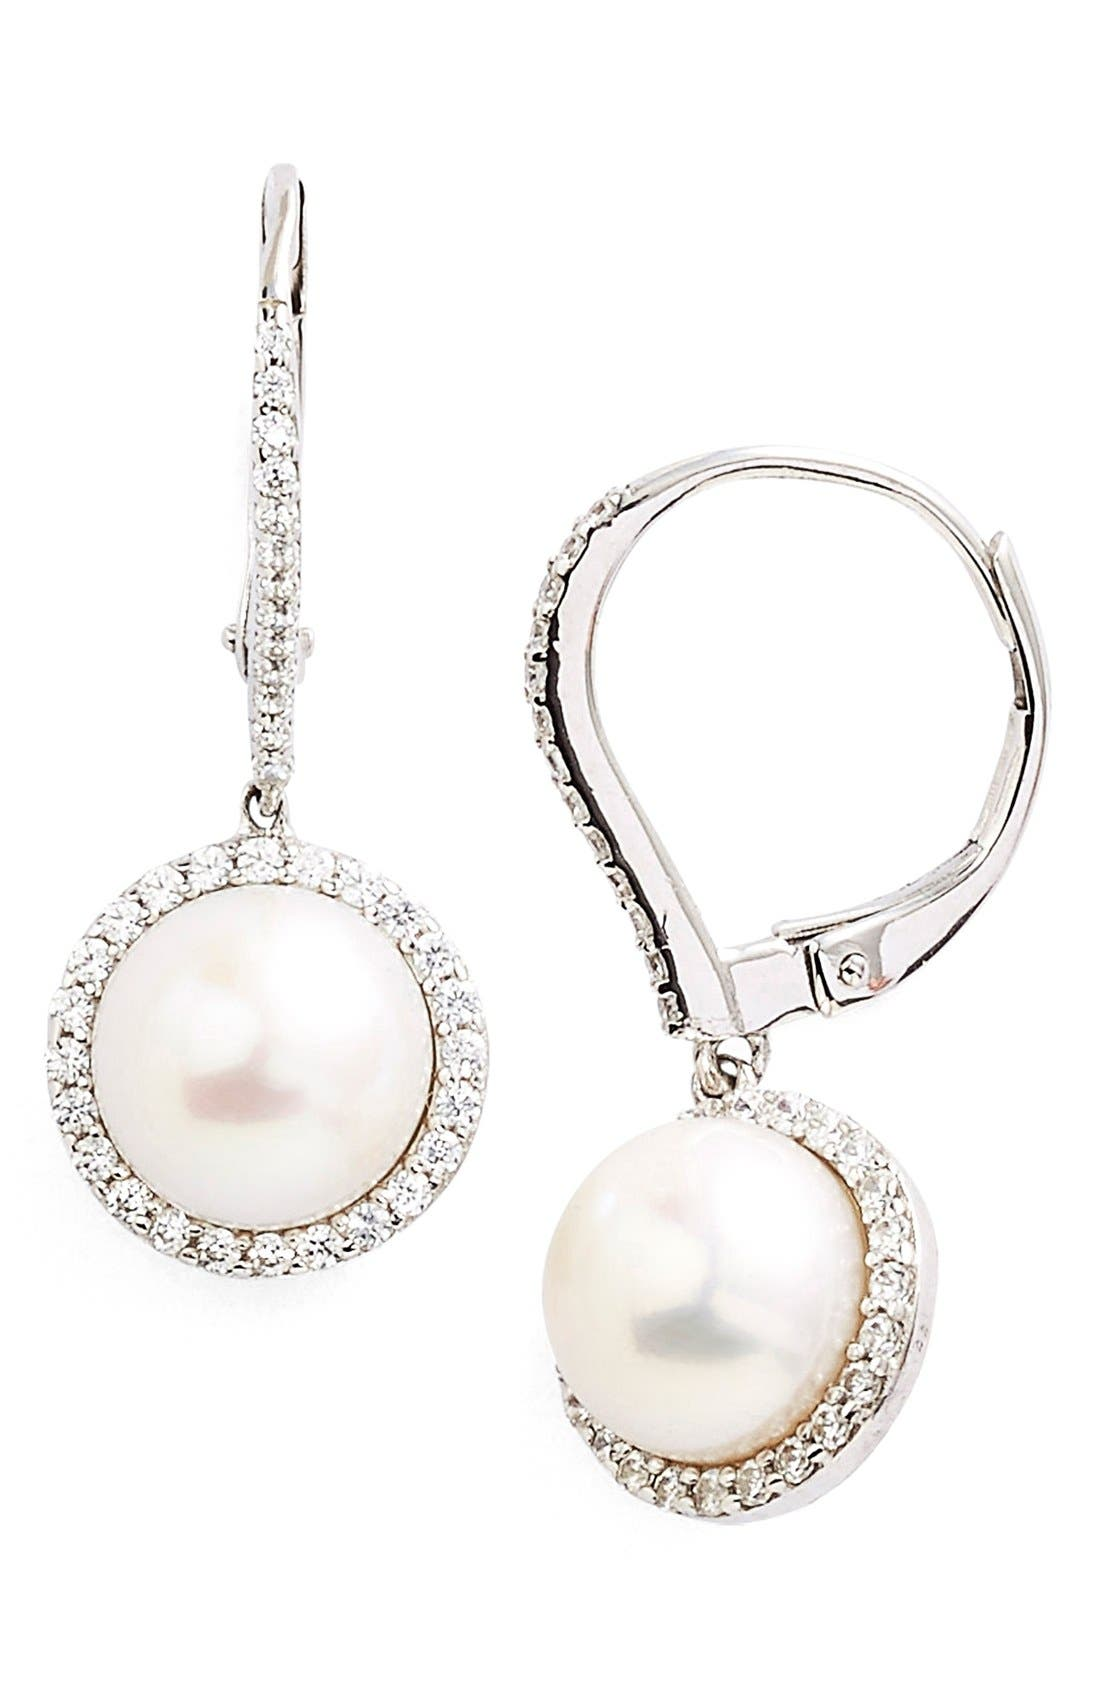 'Lassaire' Pearl Drop Earrings,                             Main thumbnail 1, color,                             Silver/ Clear